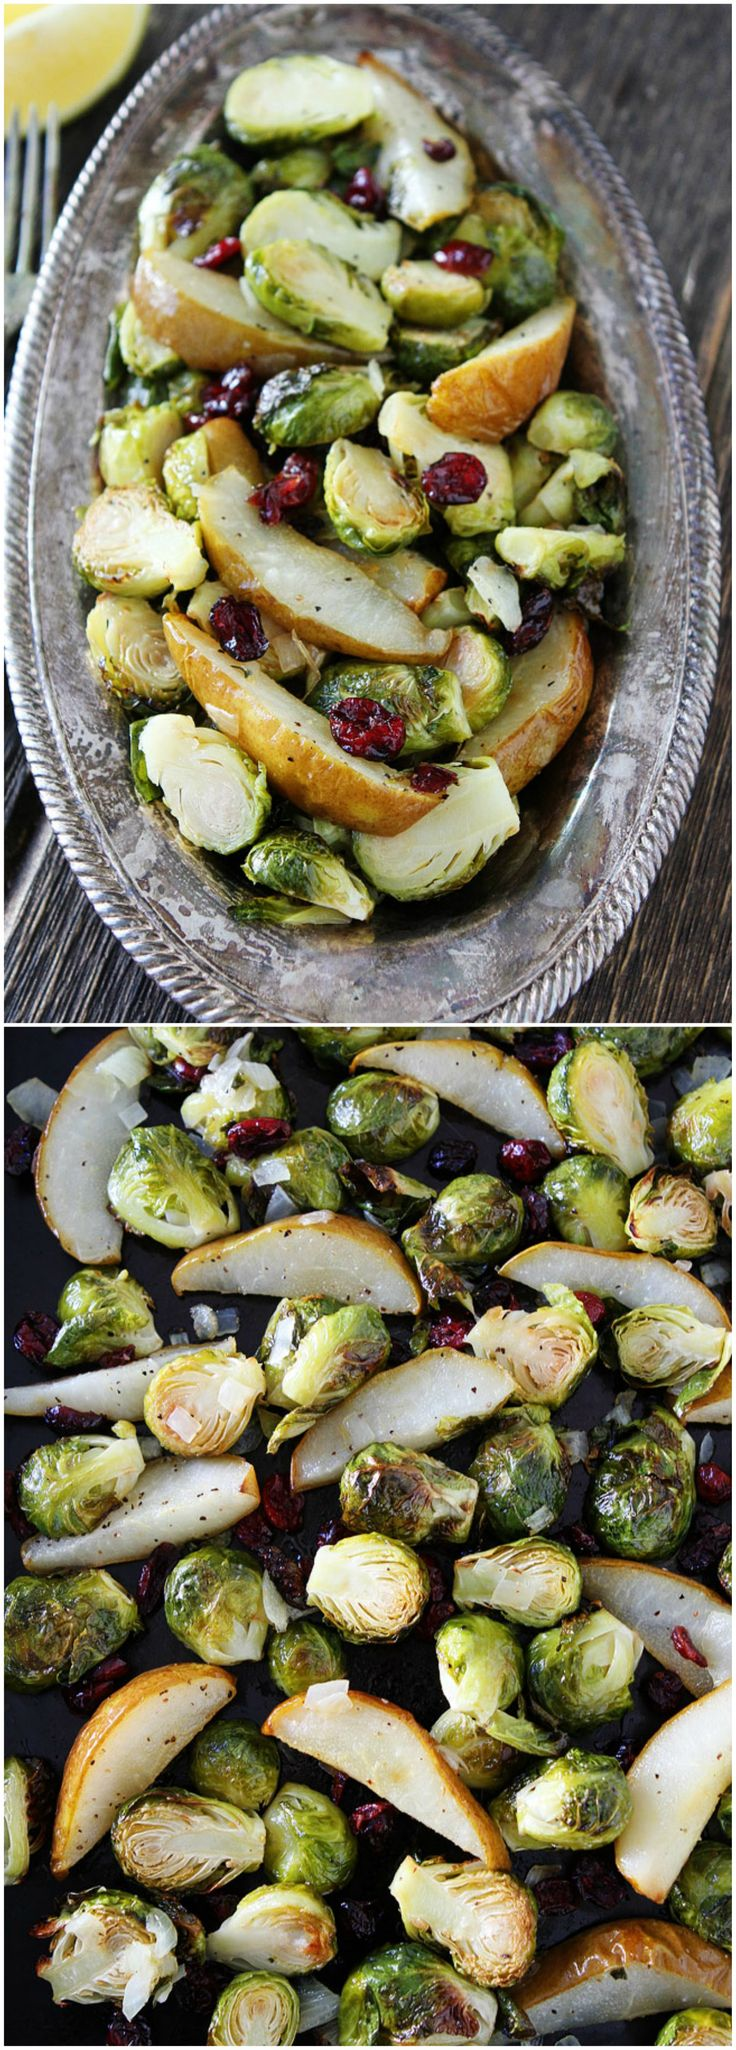 Roasted Pear and Cranberry Brussels Sprouts Recipe on twopeasandtheirpod.com These are the BEST Brussels Sprouts and the perfect side dish to any meal!